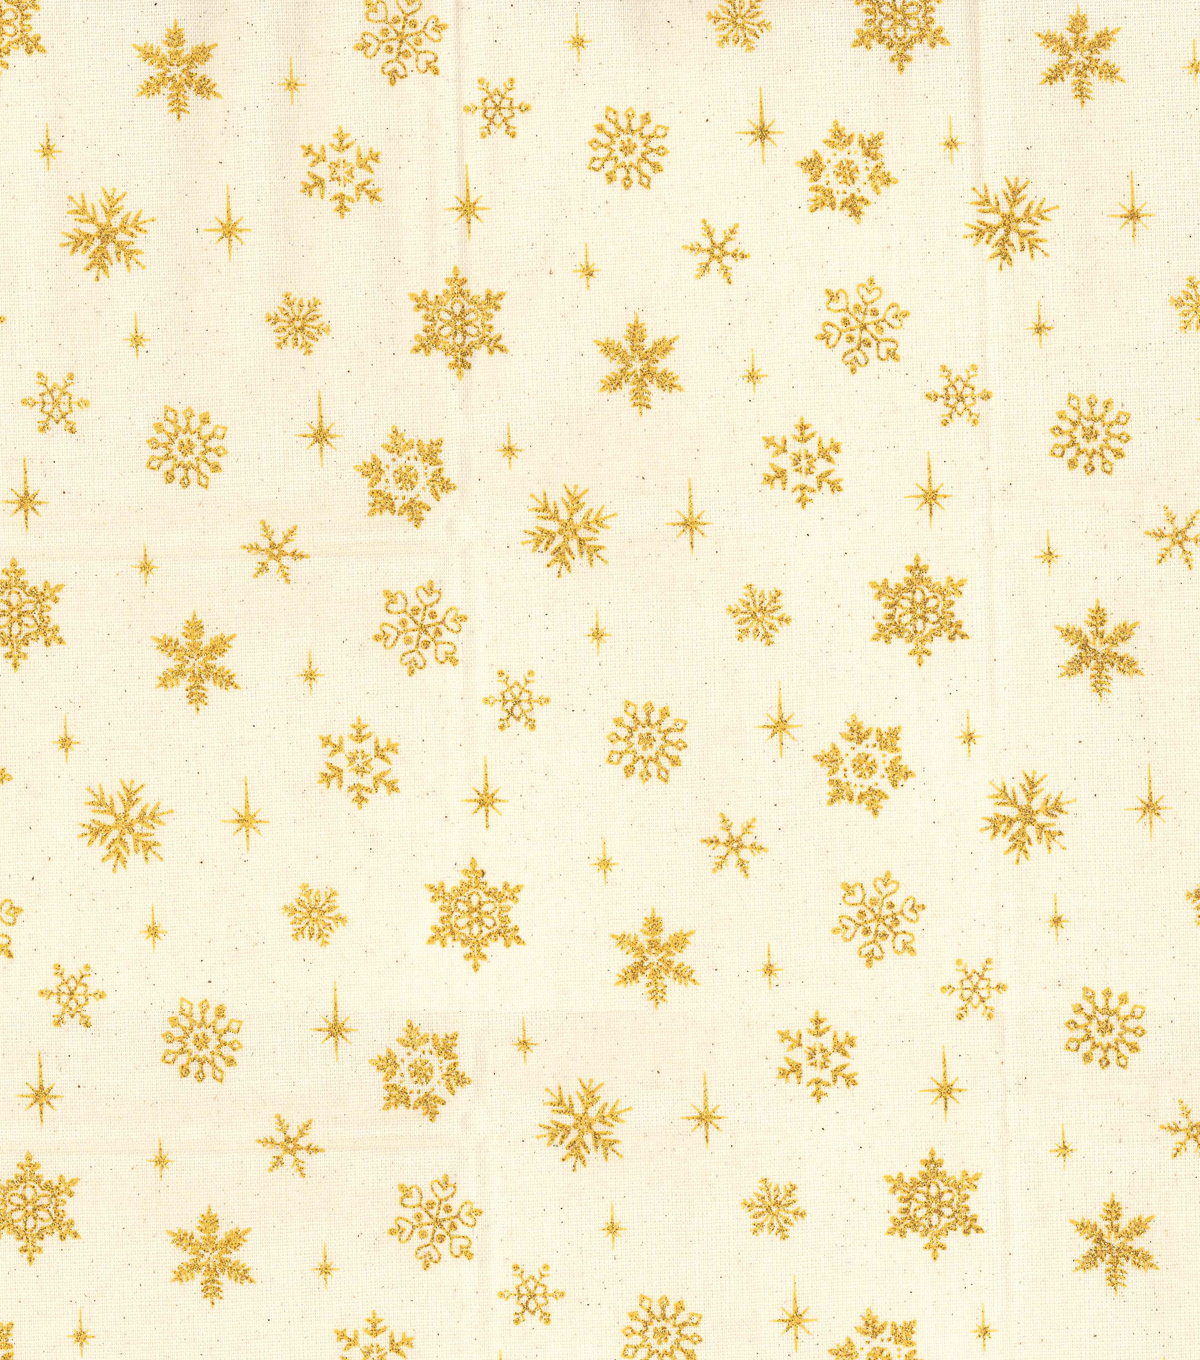 Maker's Holiday Osnaburg Cotton Print Fabric 44''-Metallic Gold Snowflake